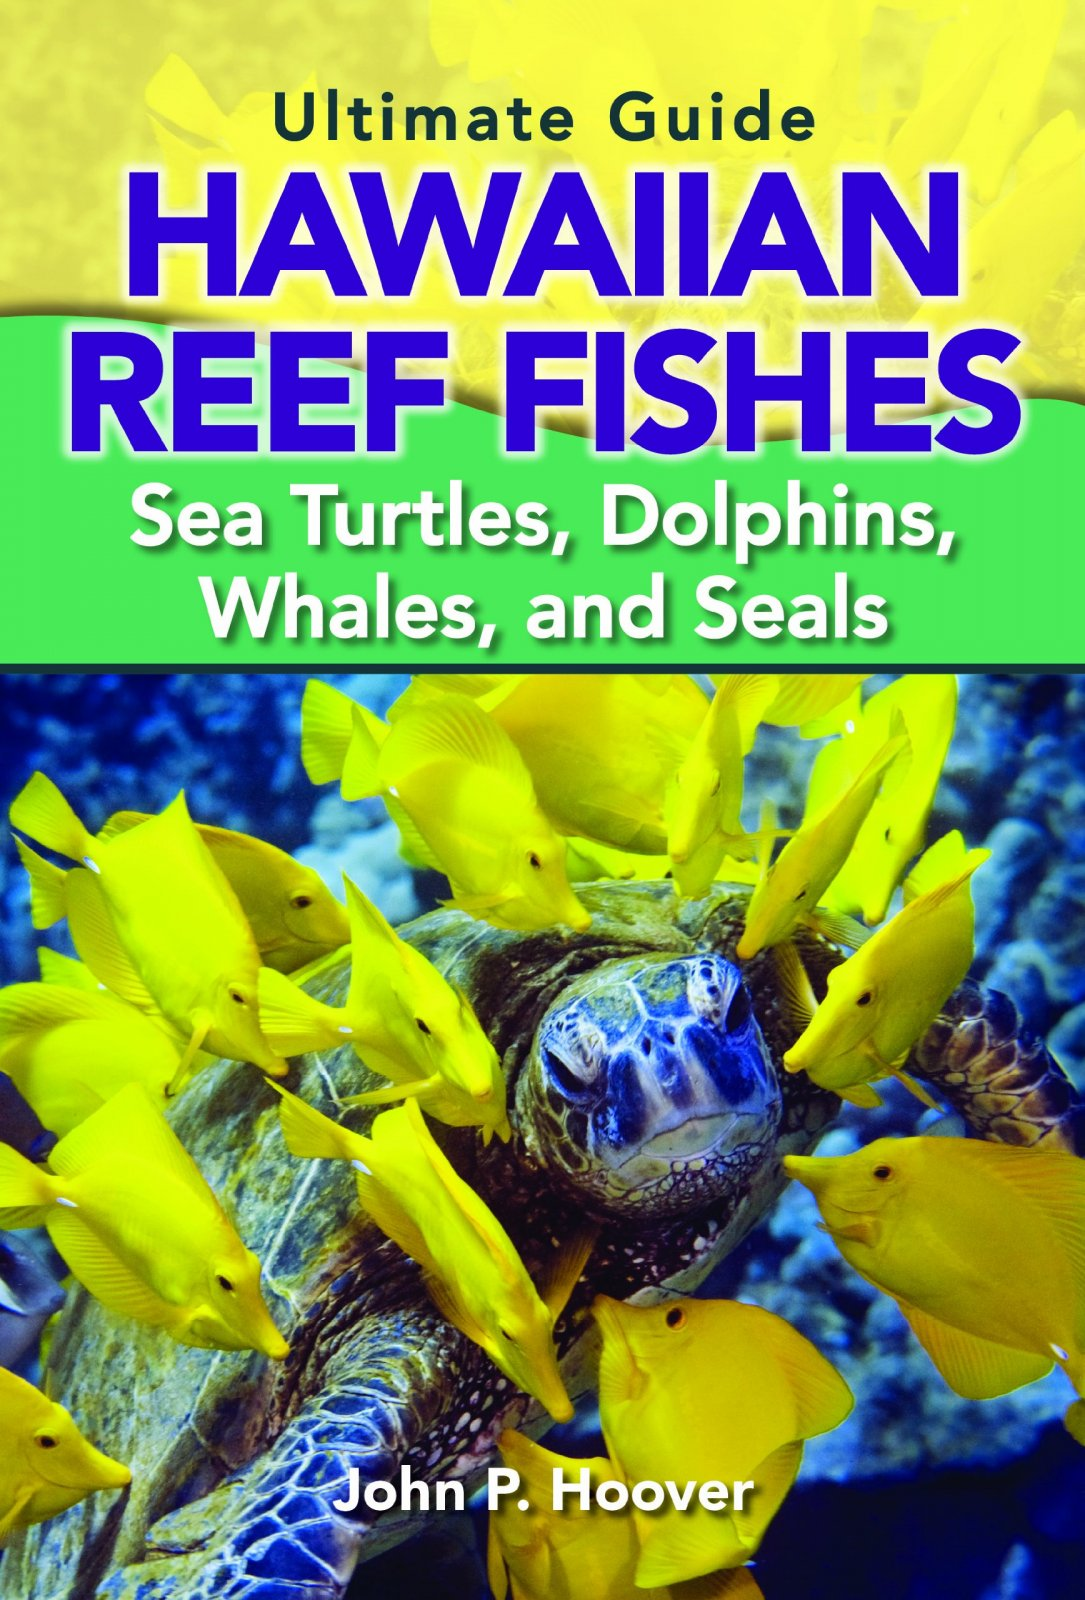 Ultimate Guide Hawaiian Reef Fishes - Hoover